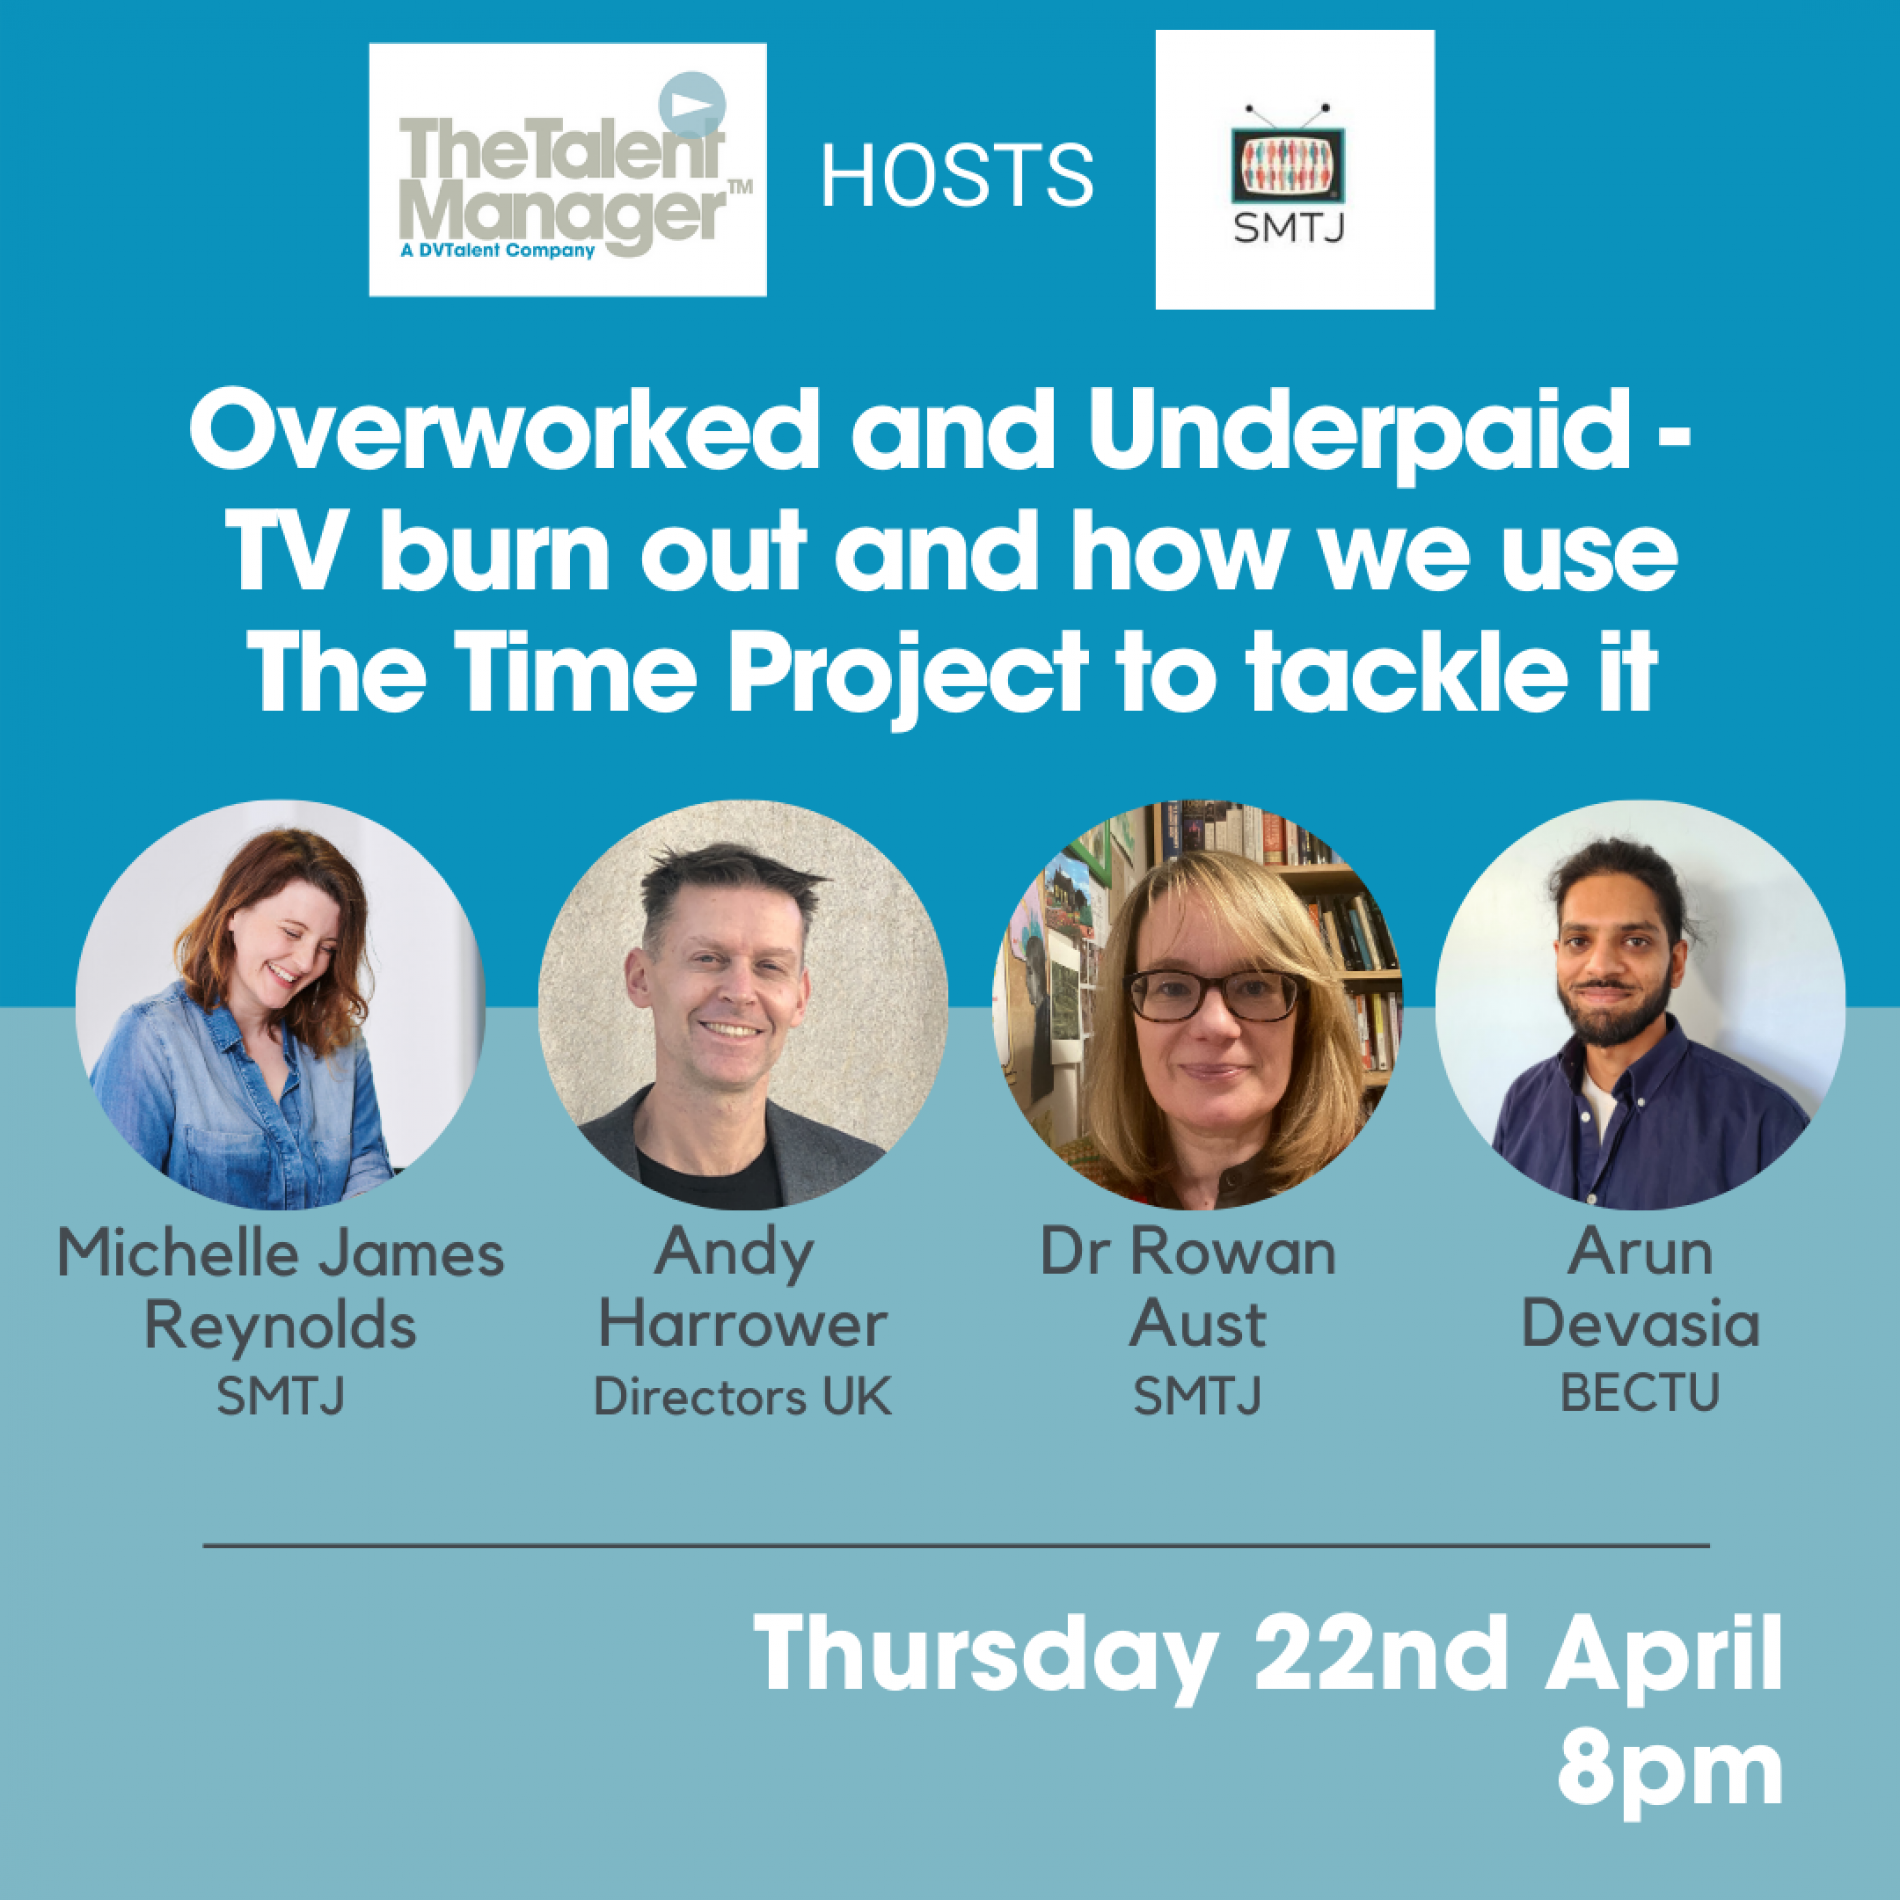 Overworked and Underpaid - TV burn out and how we use The Time Project to tackle it